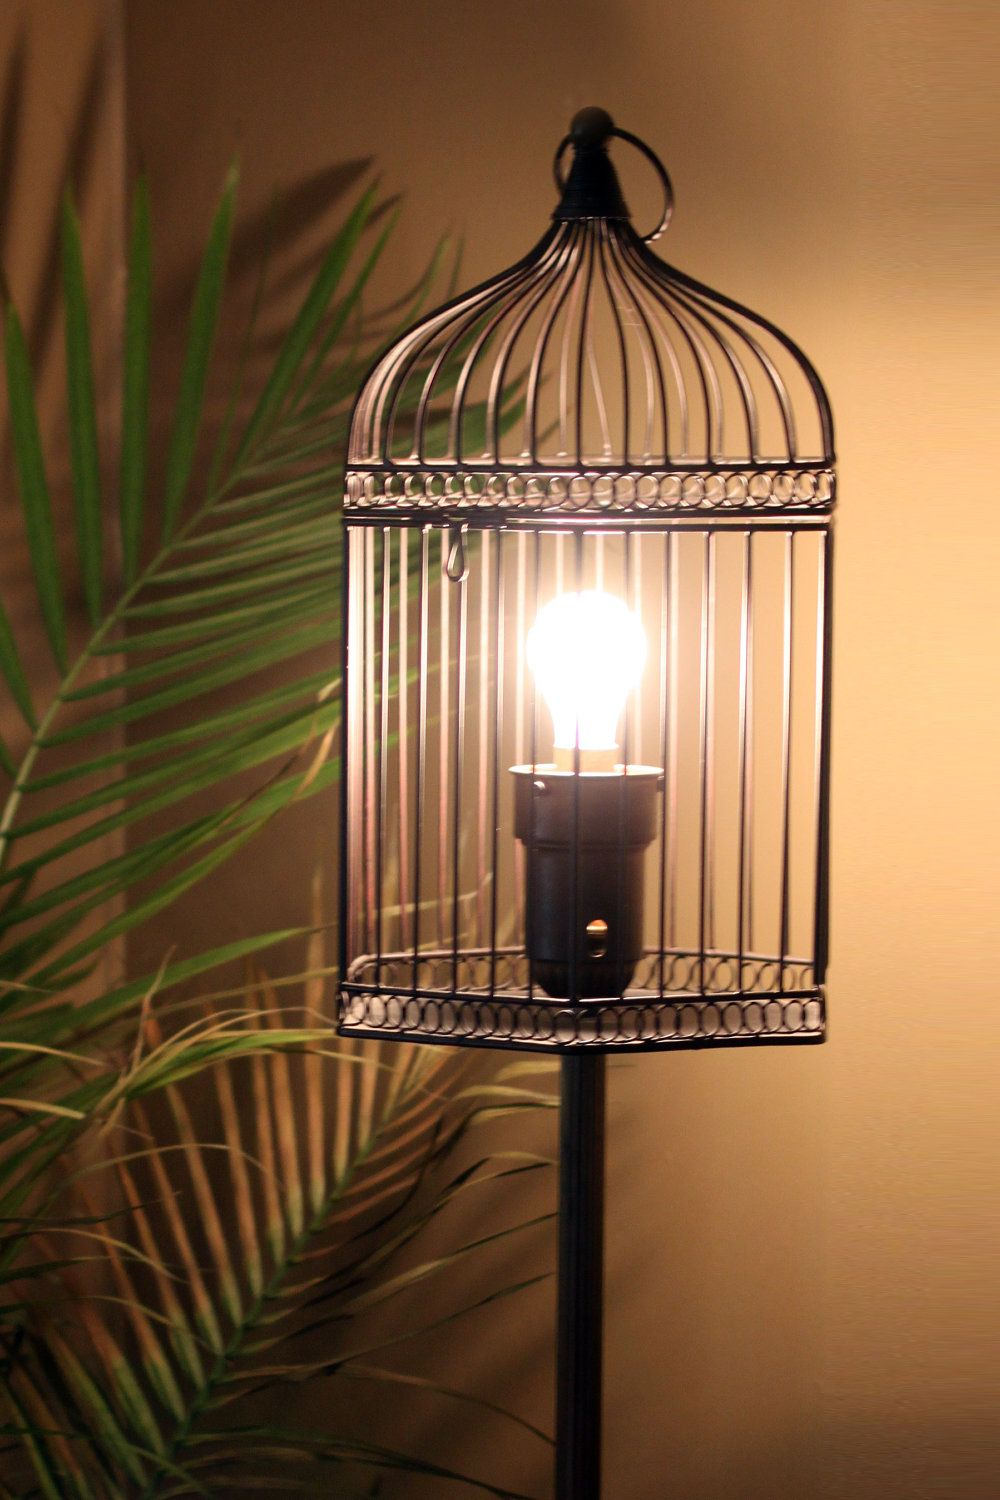 t creative lamp bedroom night birdcage product portable shape dreambed baby led atmosphere pink sl light